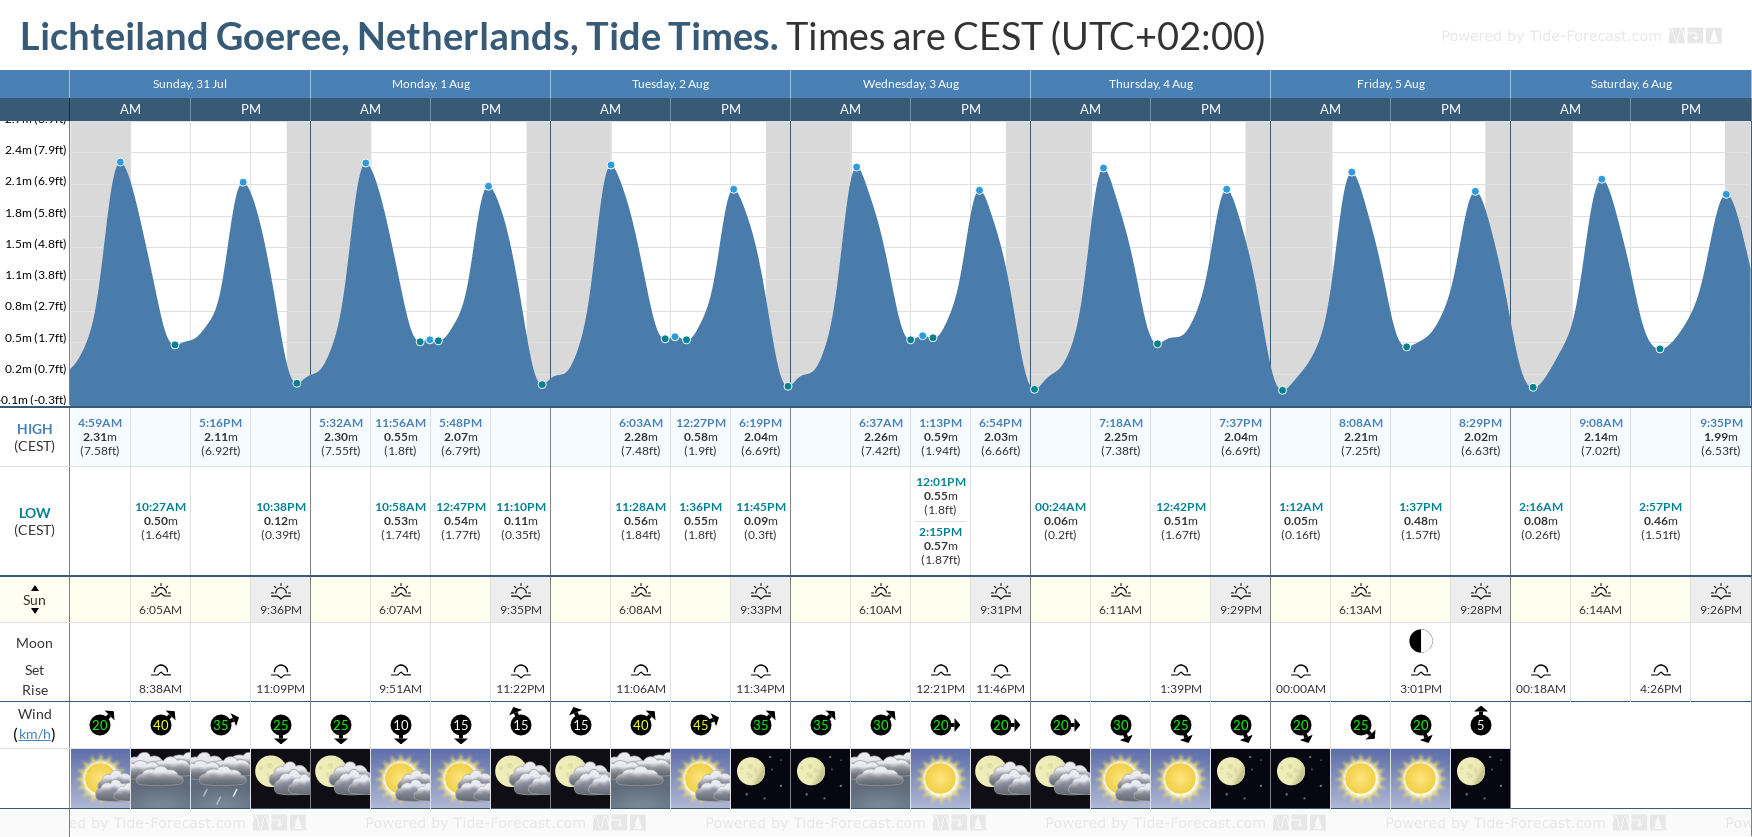 Lichteiland Goeree, Netherlands Tide Chart including high and low tide tide times for the next 7 days